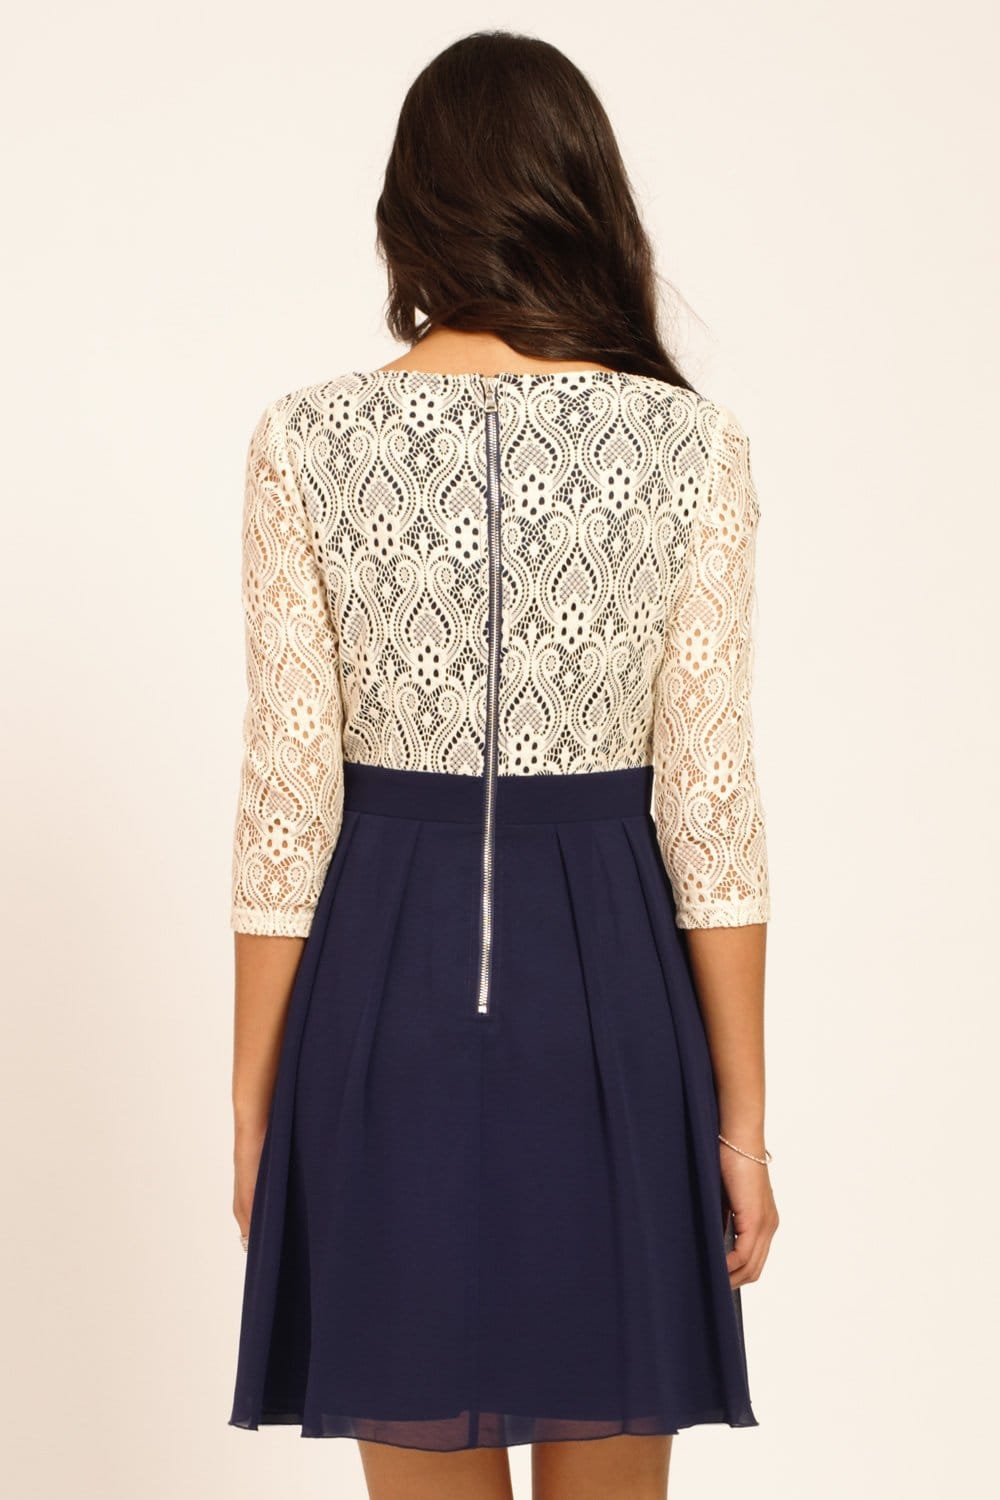 Cream Lace Dress Short